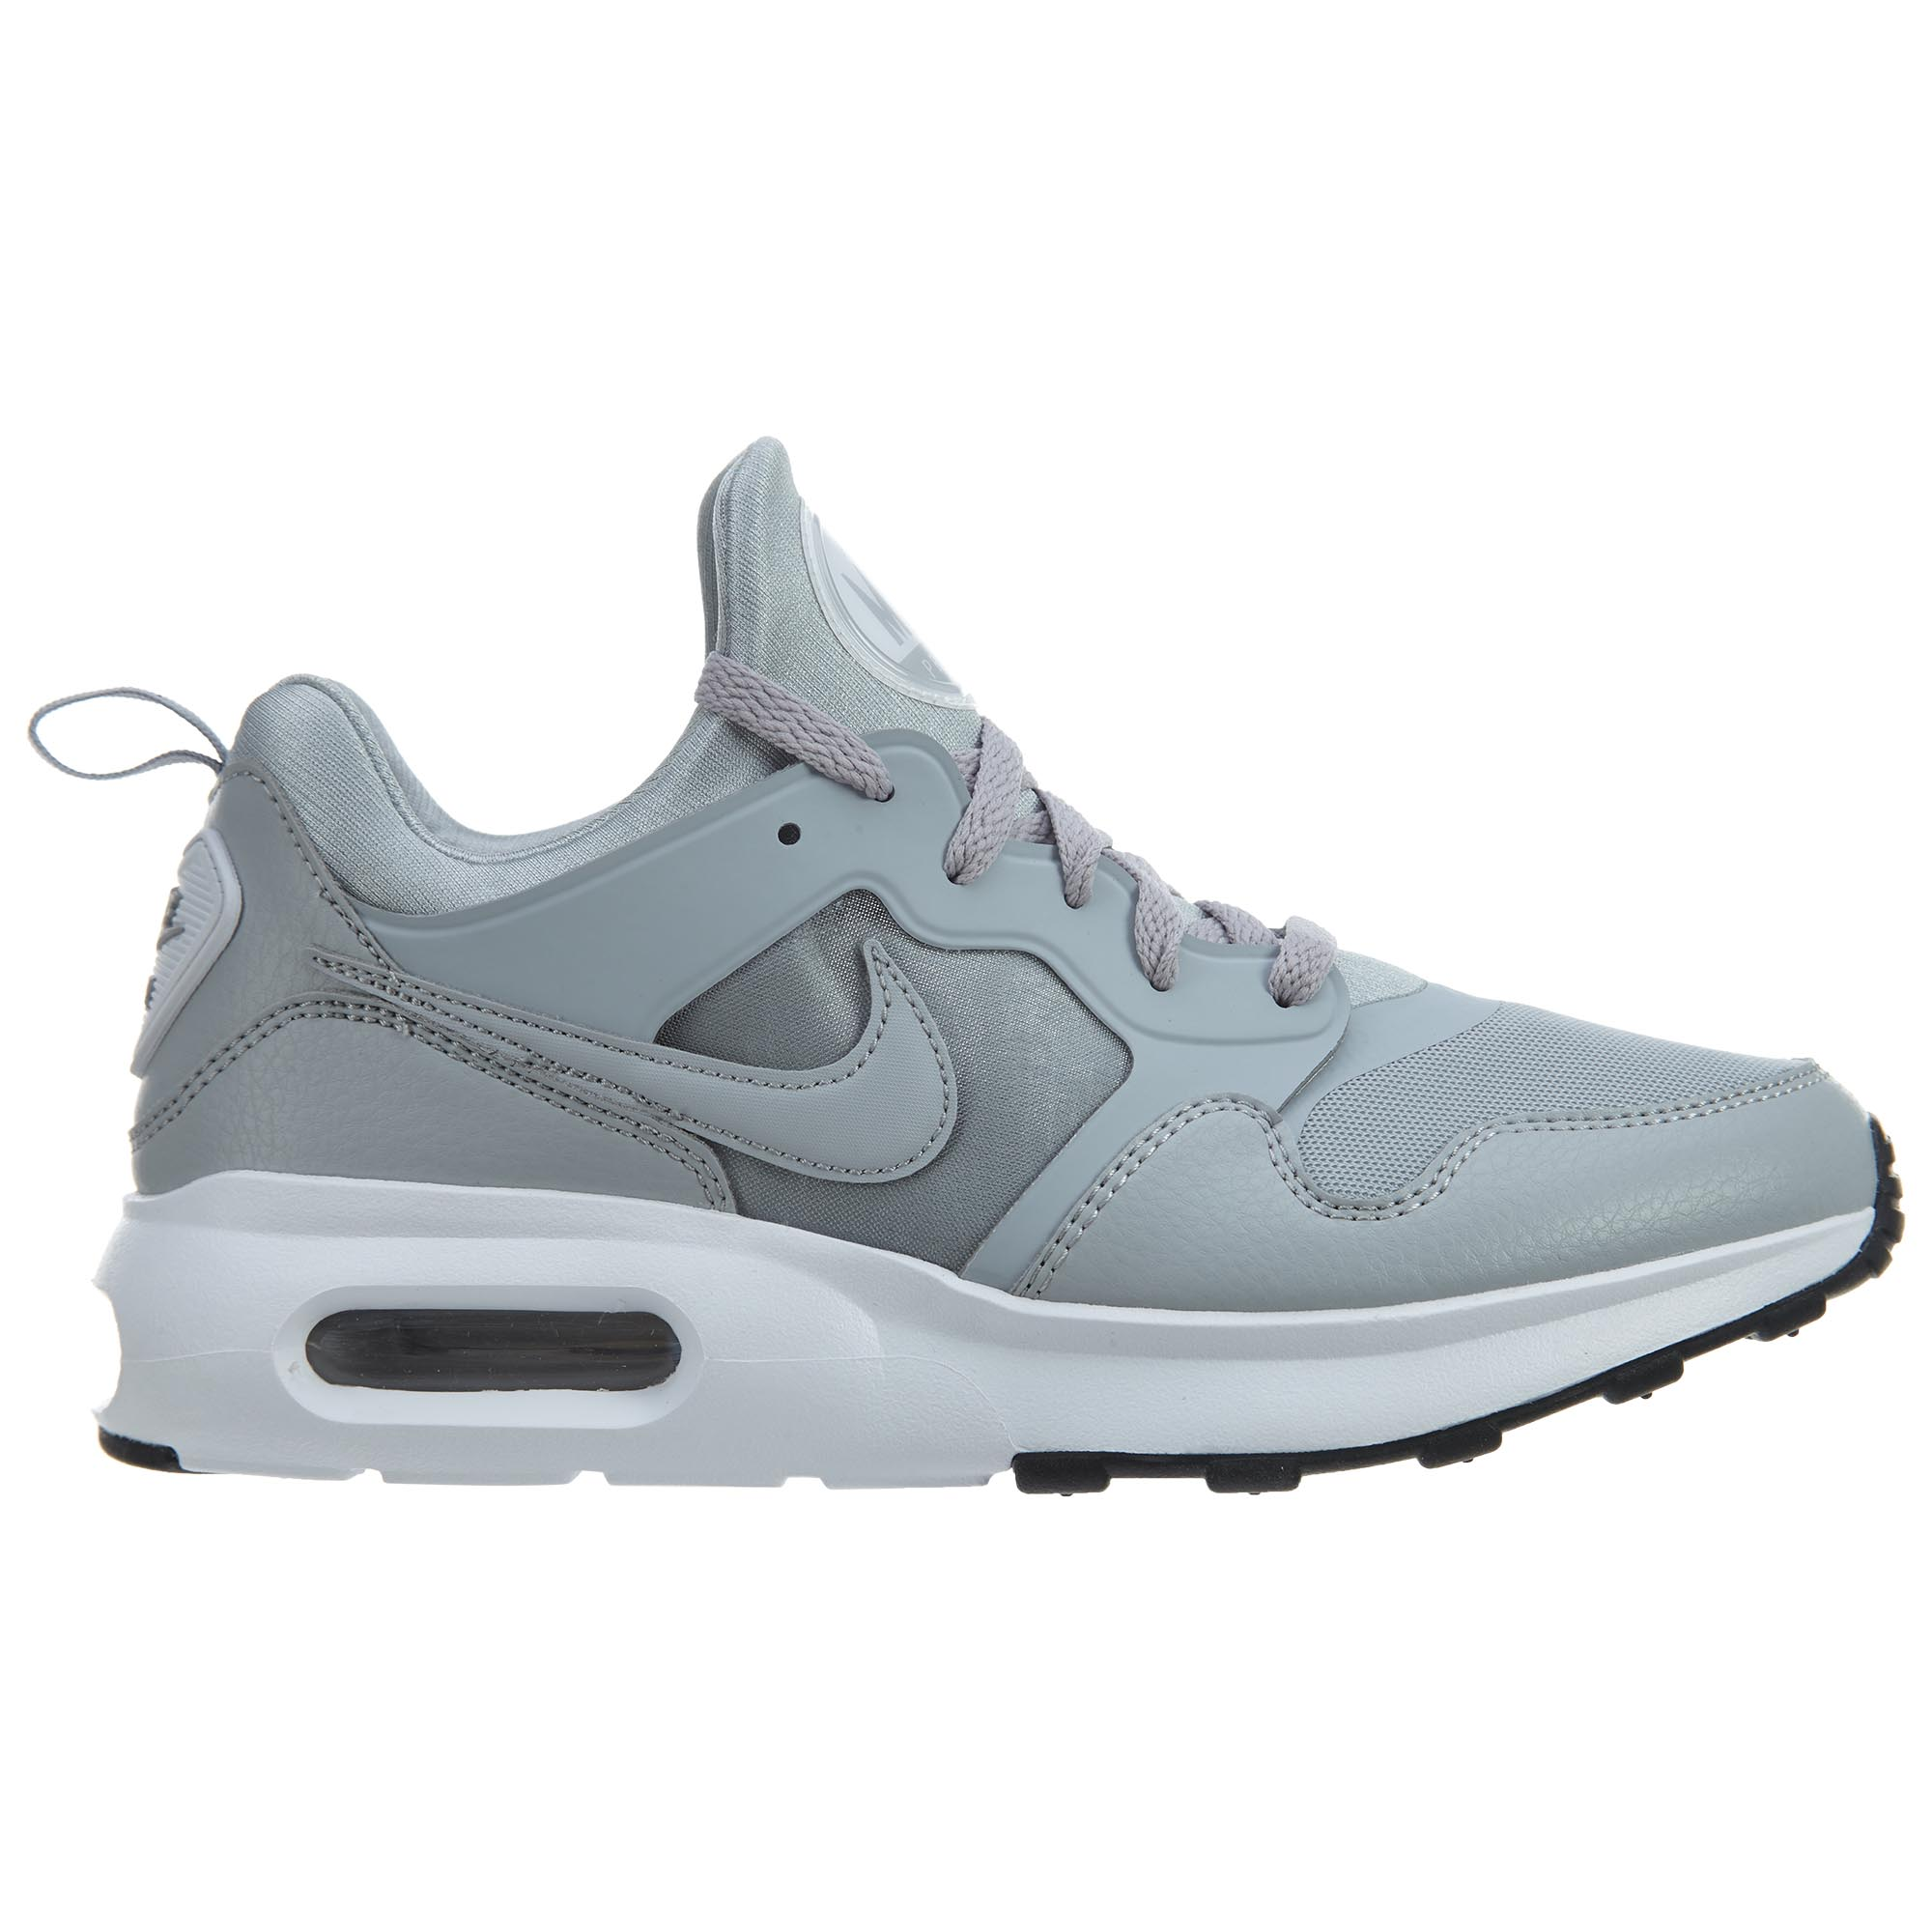 NIKE AIR MAX Prime Wolf Grey Men's Size 7.5 13 New in Box 876068 002